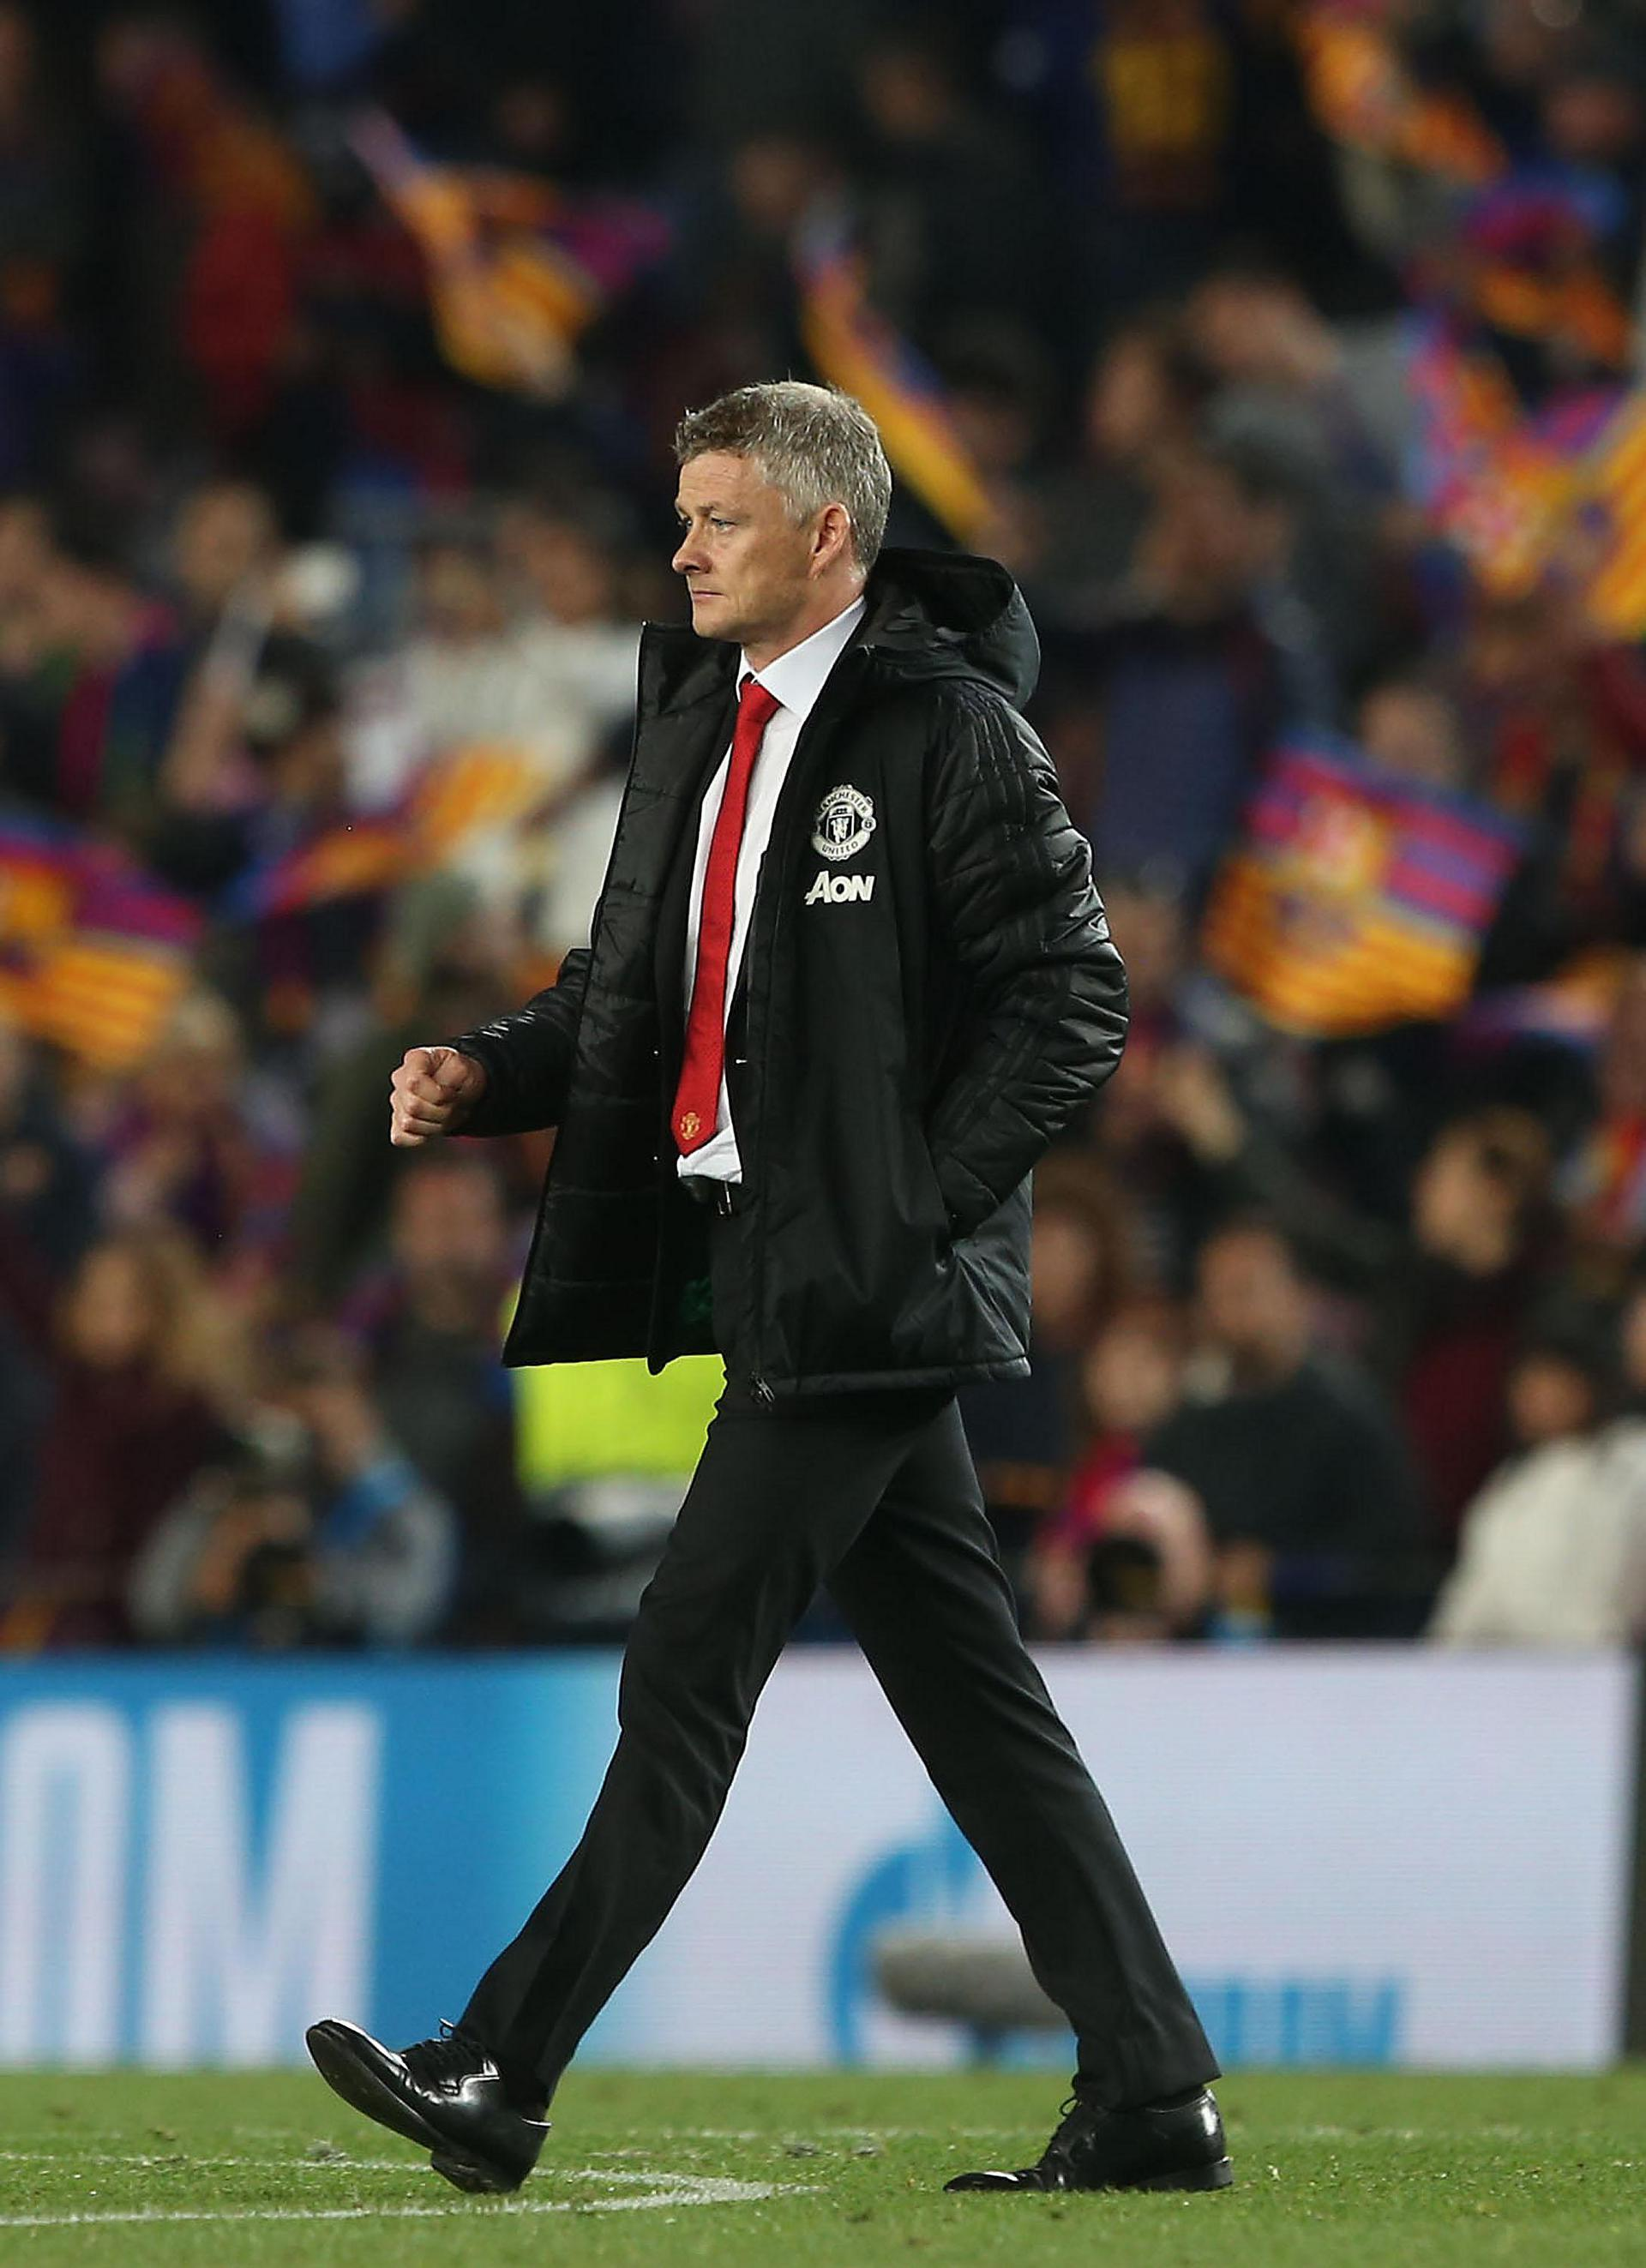 Ole Gunnar Solskjaer walks off the pitch at full time.